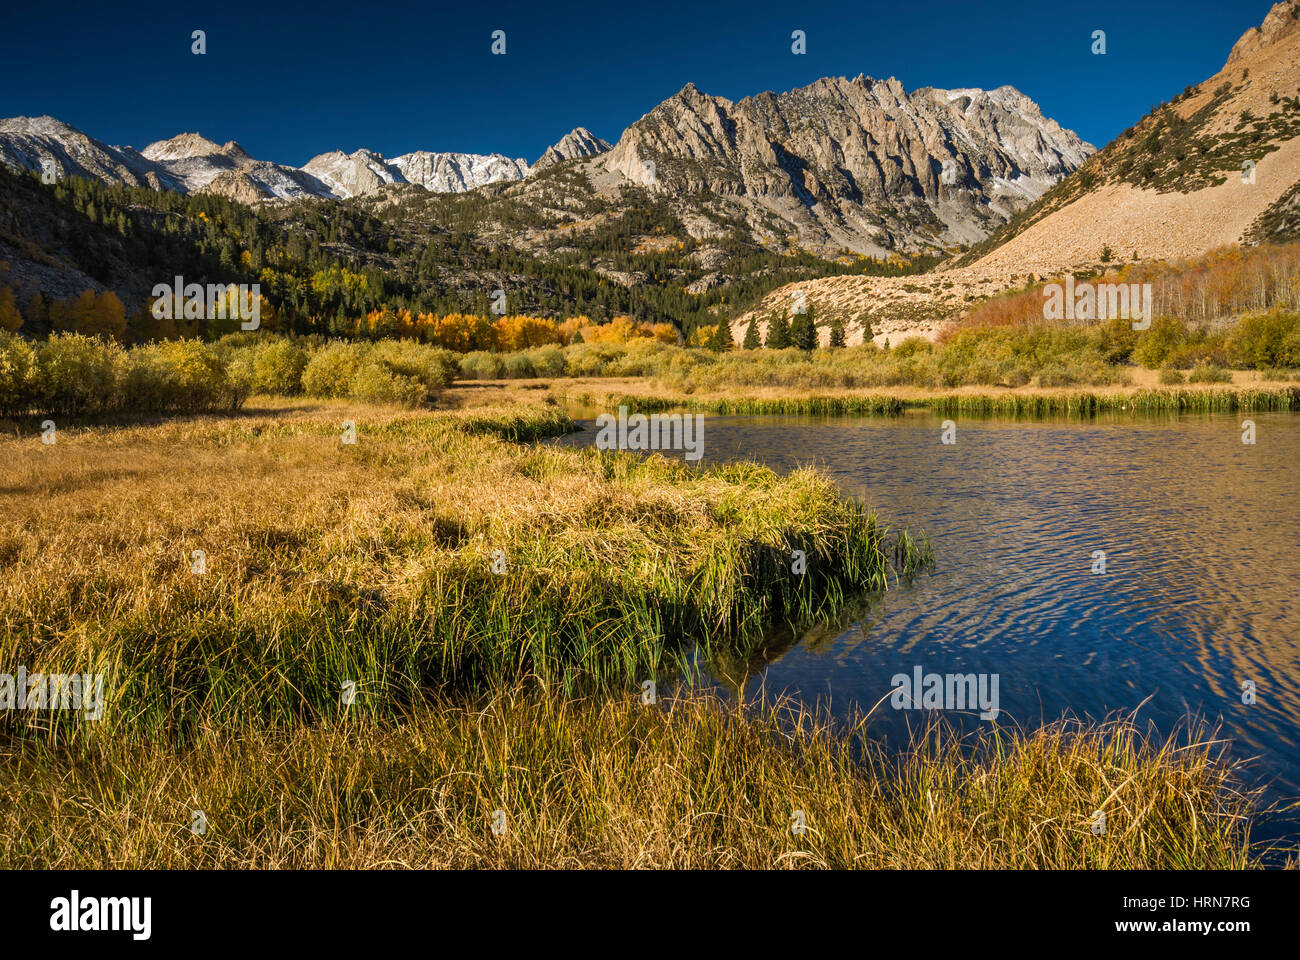 North Lake in Sabrina Basin, Mt. Lamarck in far distance, Evolution Region, John Muir Wilderness, Eastern Sierra - Stock Image